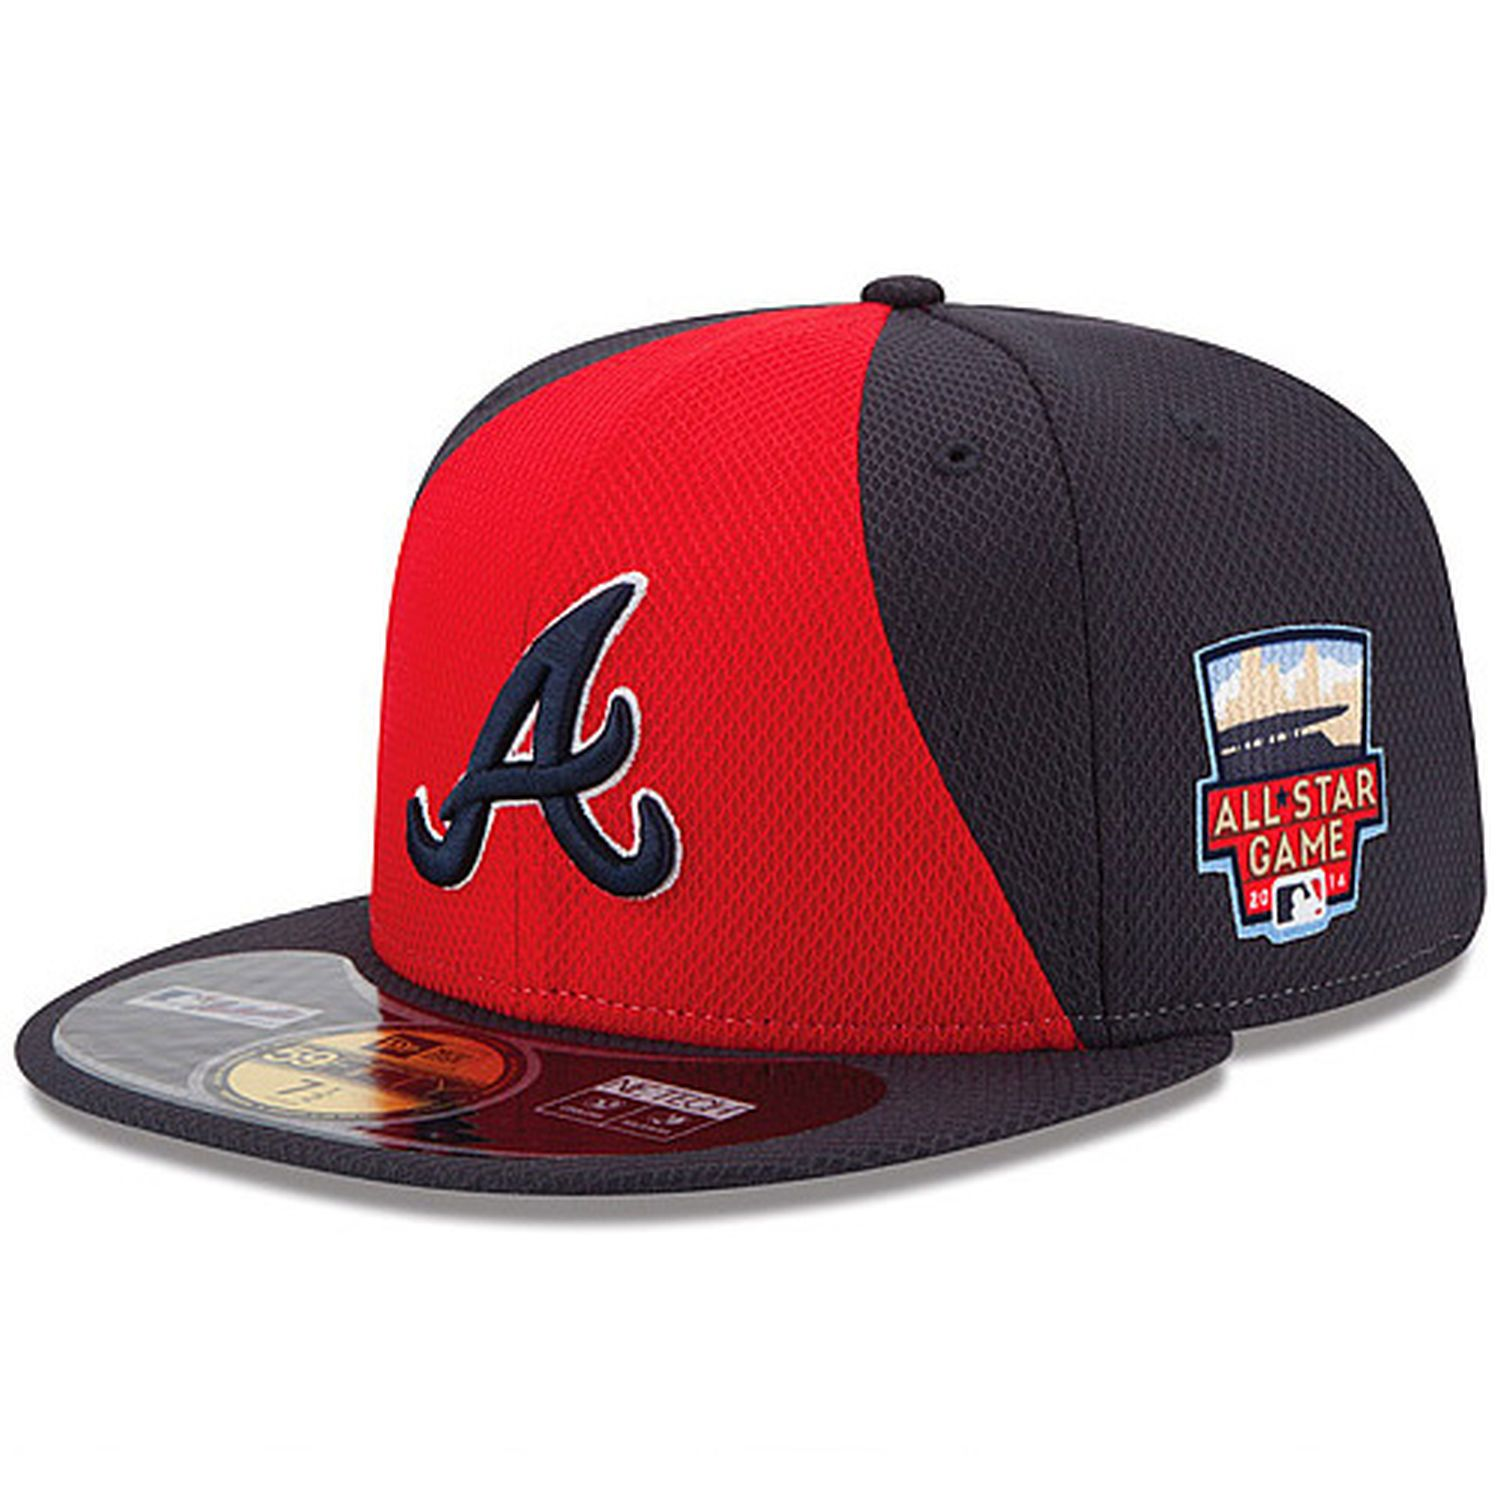 Men S Atlanta Braves New Era Red Navy Authentic Collection Diamond Era On Field 59fifty Fitted Hat With 2014 All S Braves Hat Atlanta Braves Atlanta Braves Hat